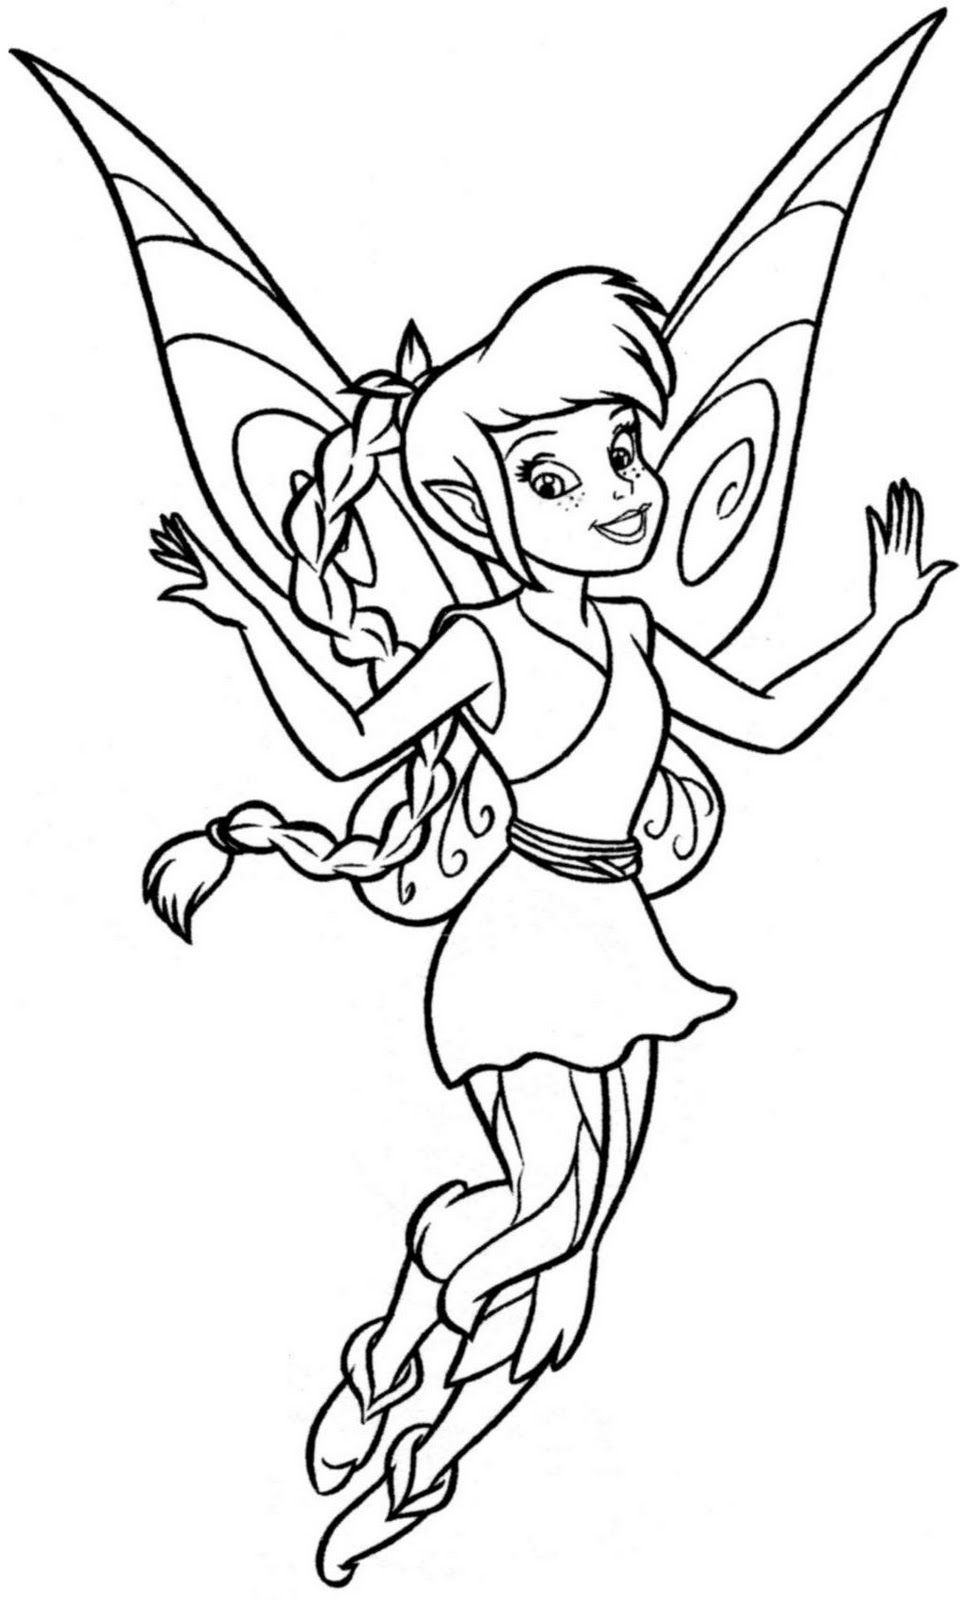 coloring tinkerbell cartoon tinkerbell coloring pages cartoon tinkerbell coloring